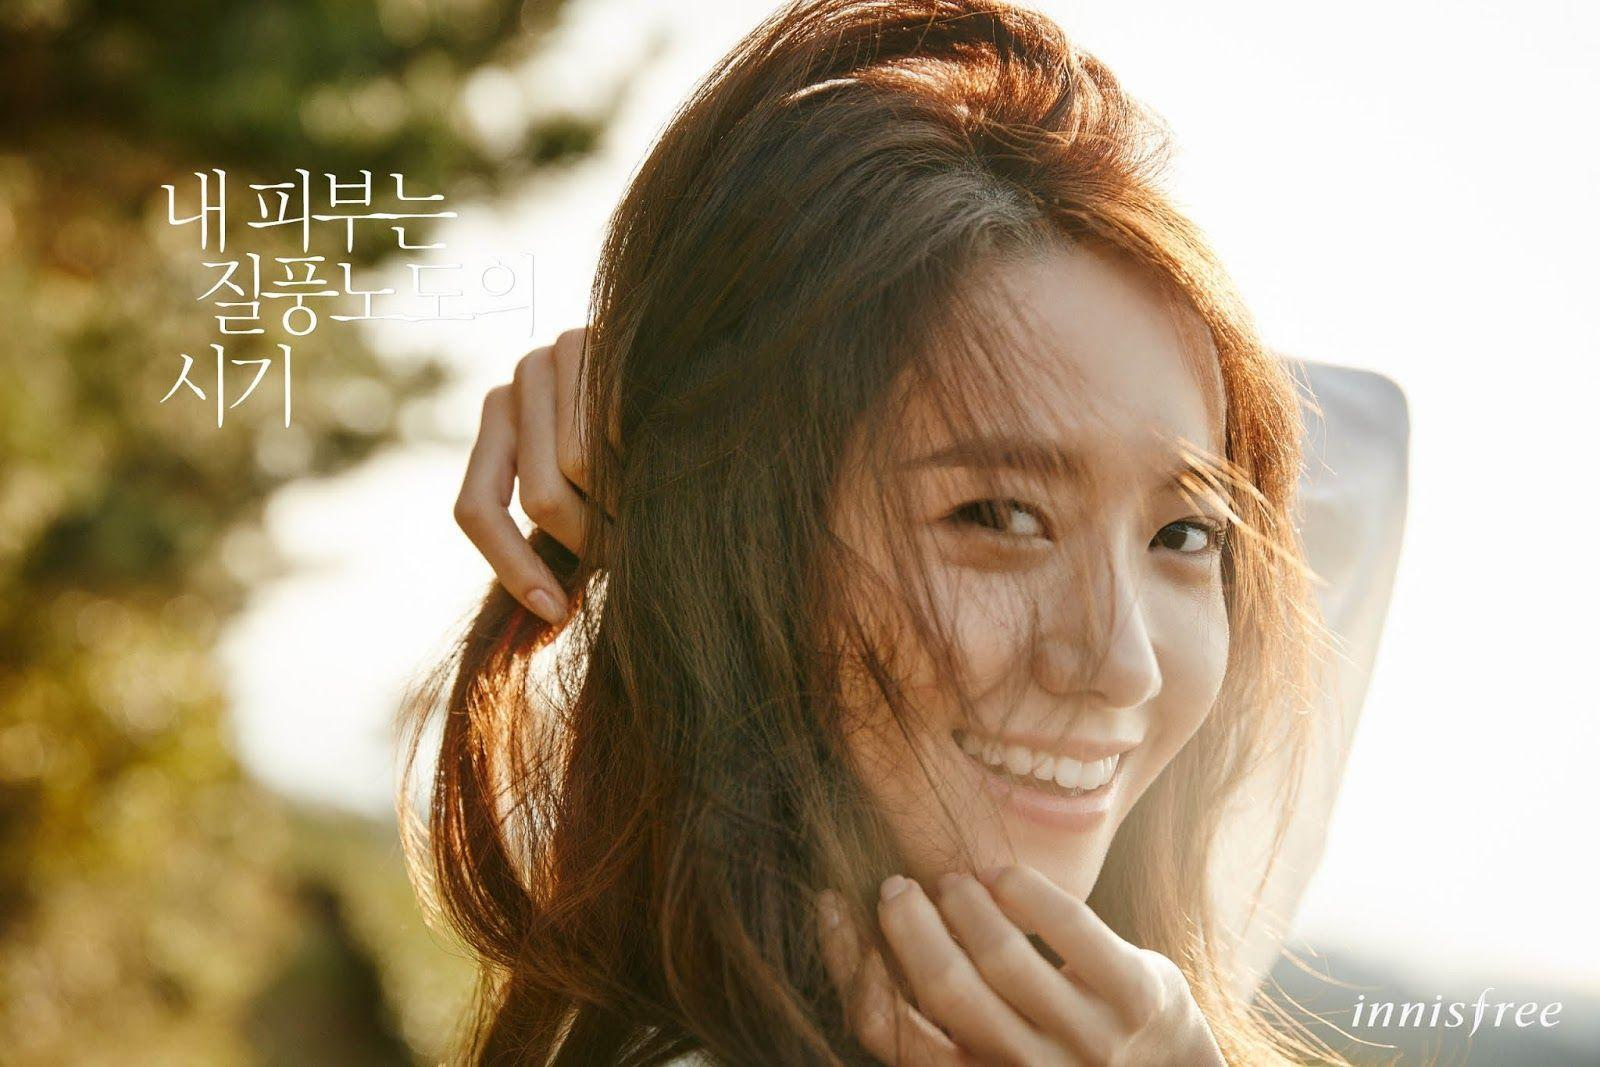 Yoona innisfree 「ORCHID ENRICHED CREAM」 2016 Promotion